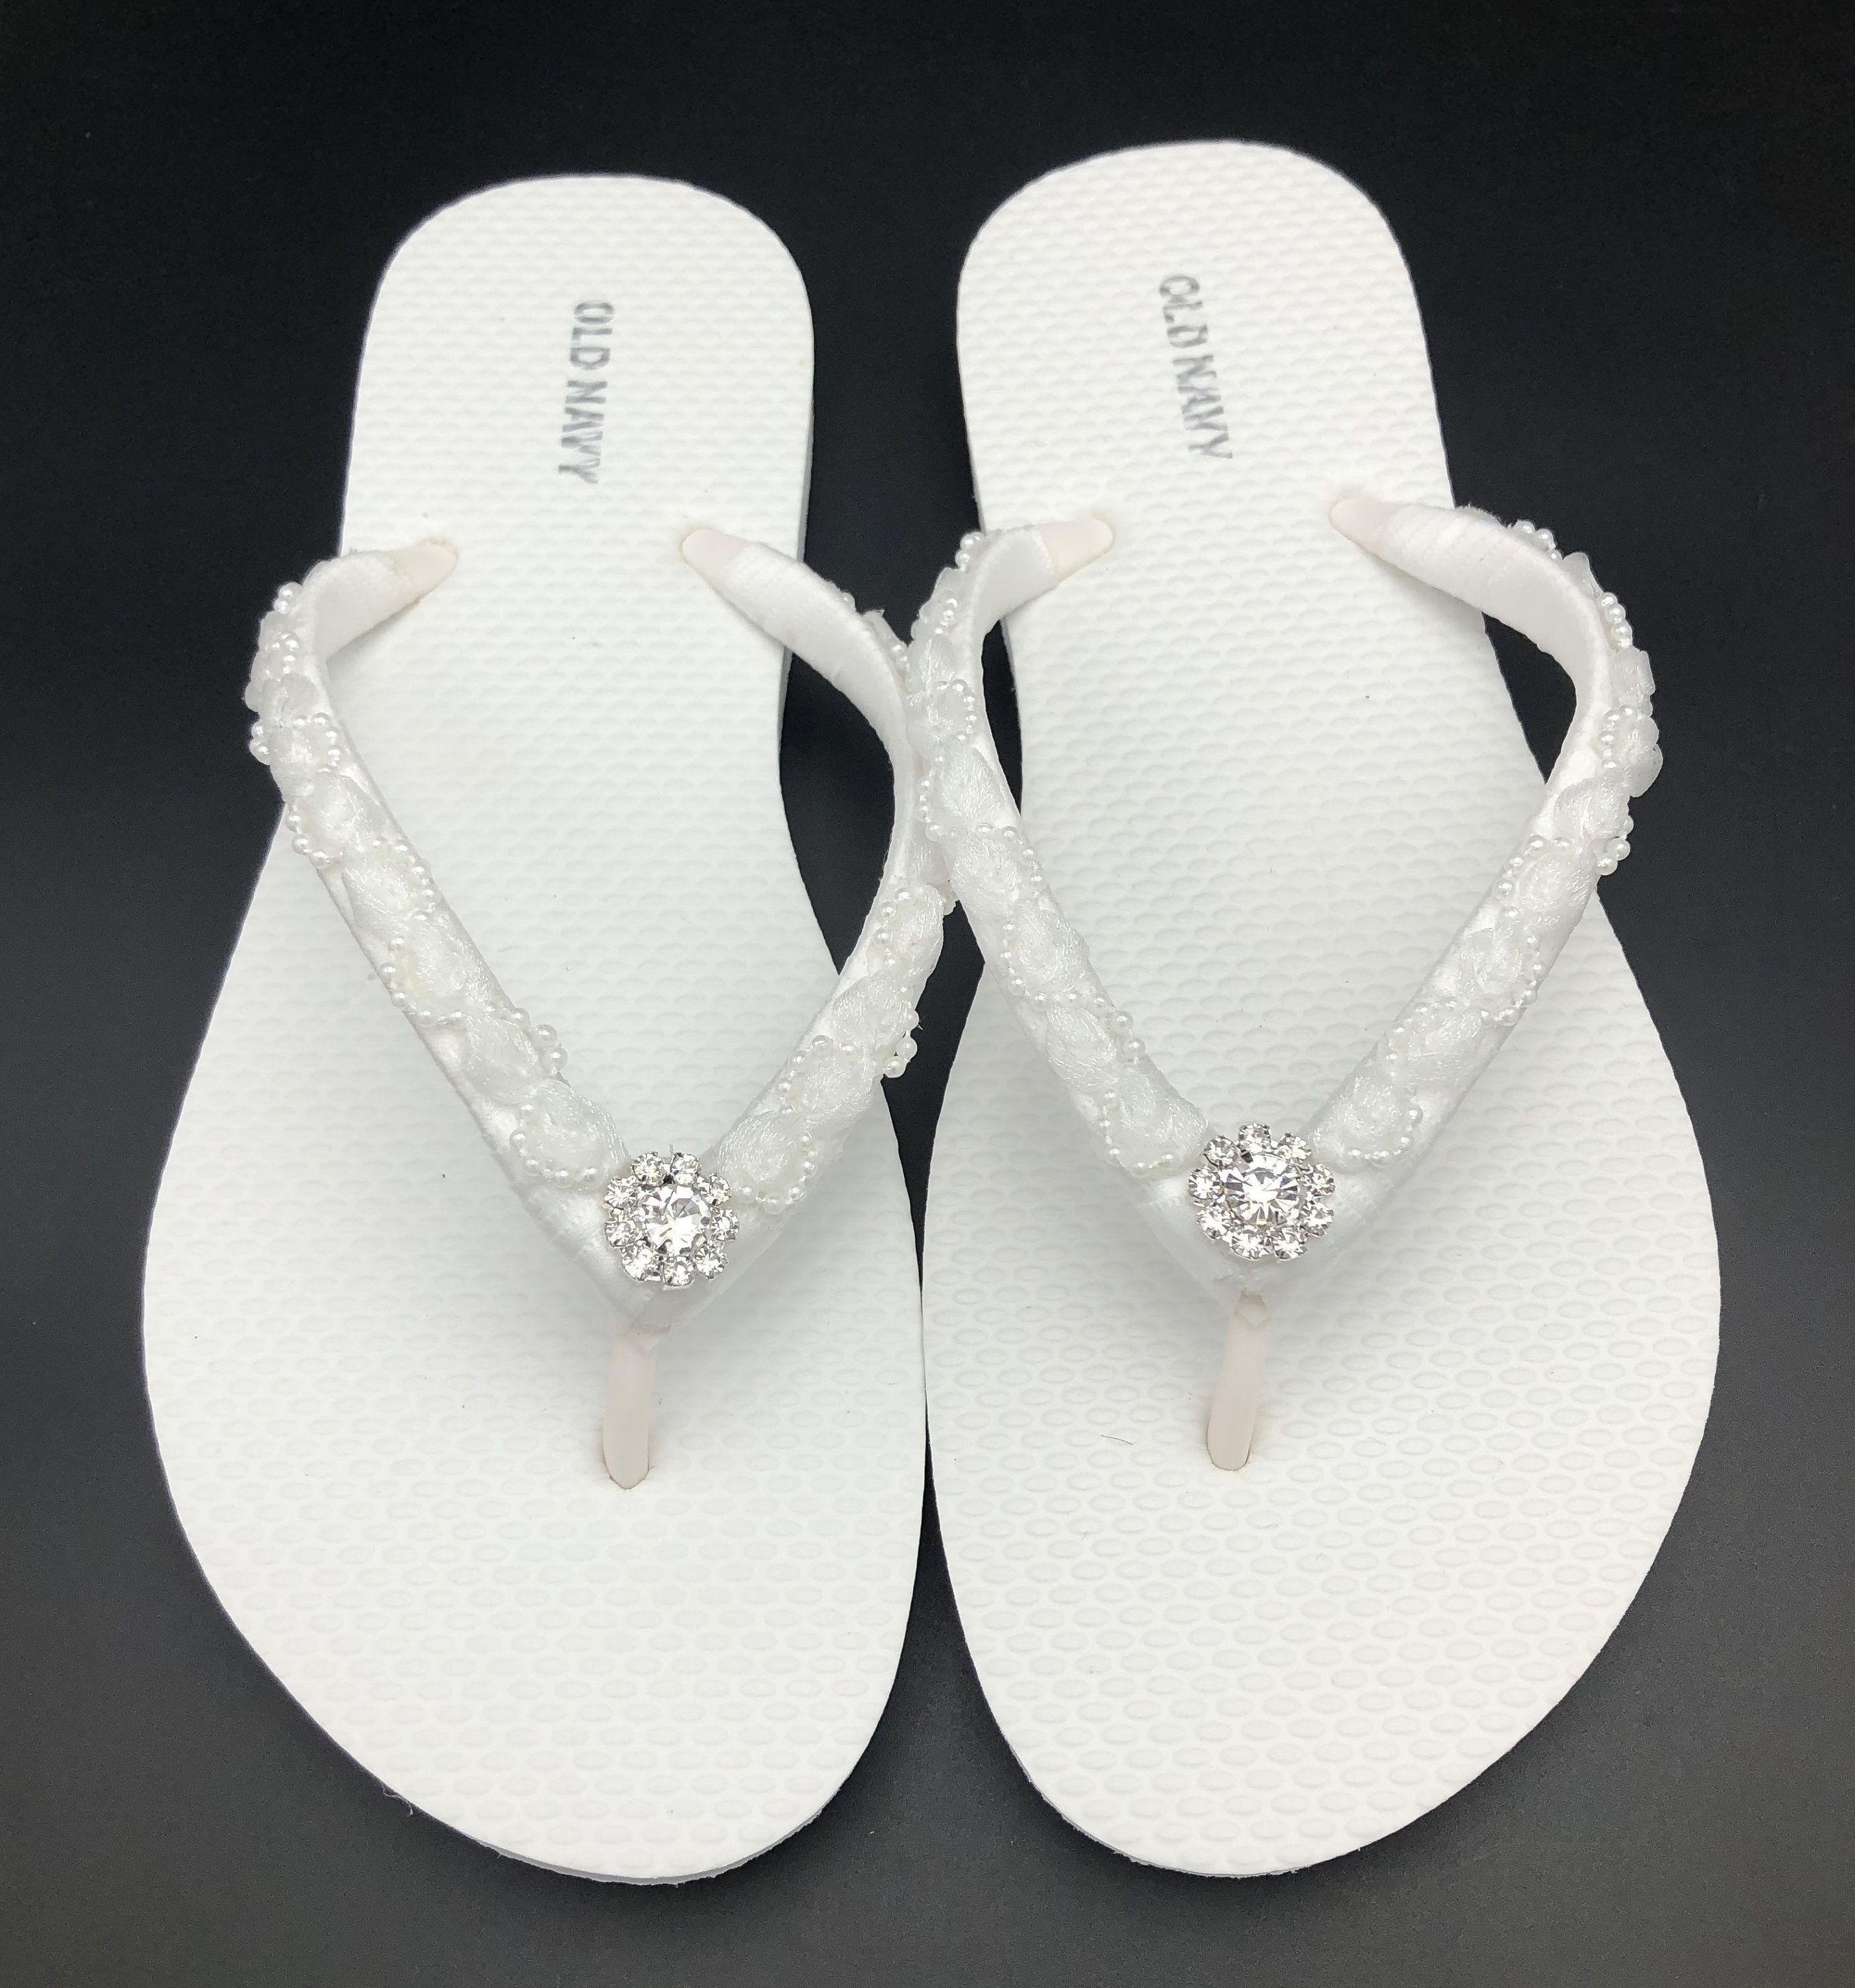 White Bridal Flip Flops Wedding Flip Flops Beach Wedding Etsy In 2020 Bridal Flip Flops Wedding Flip Flops Beach Wedding Flip Flops